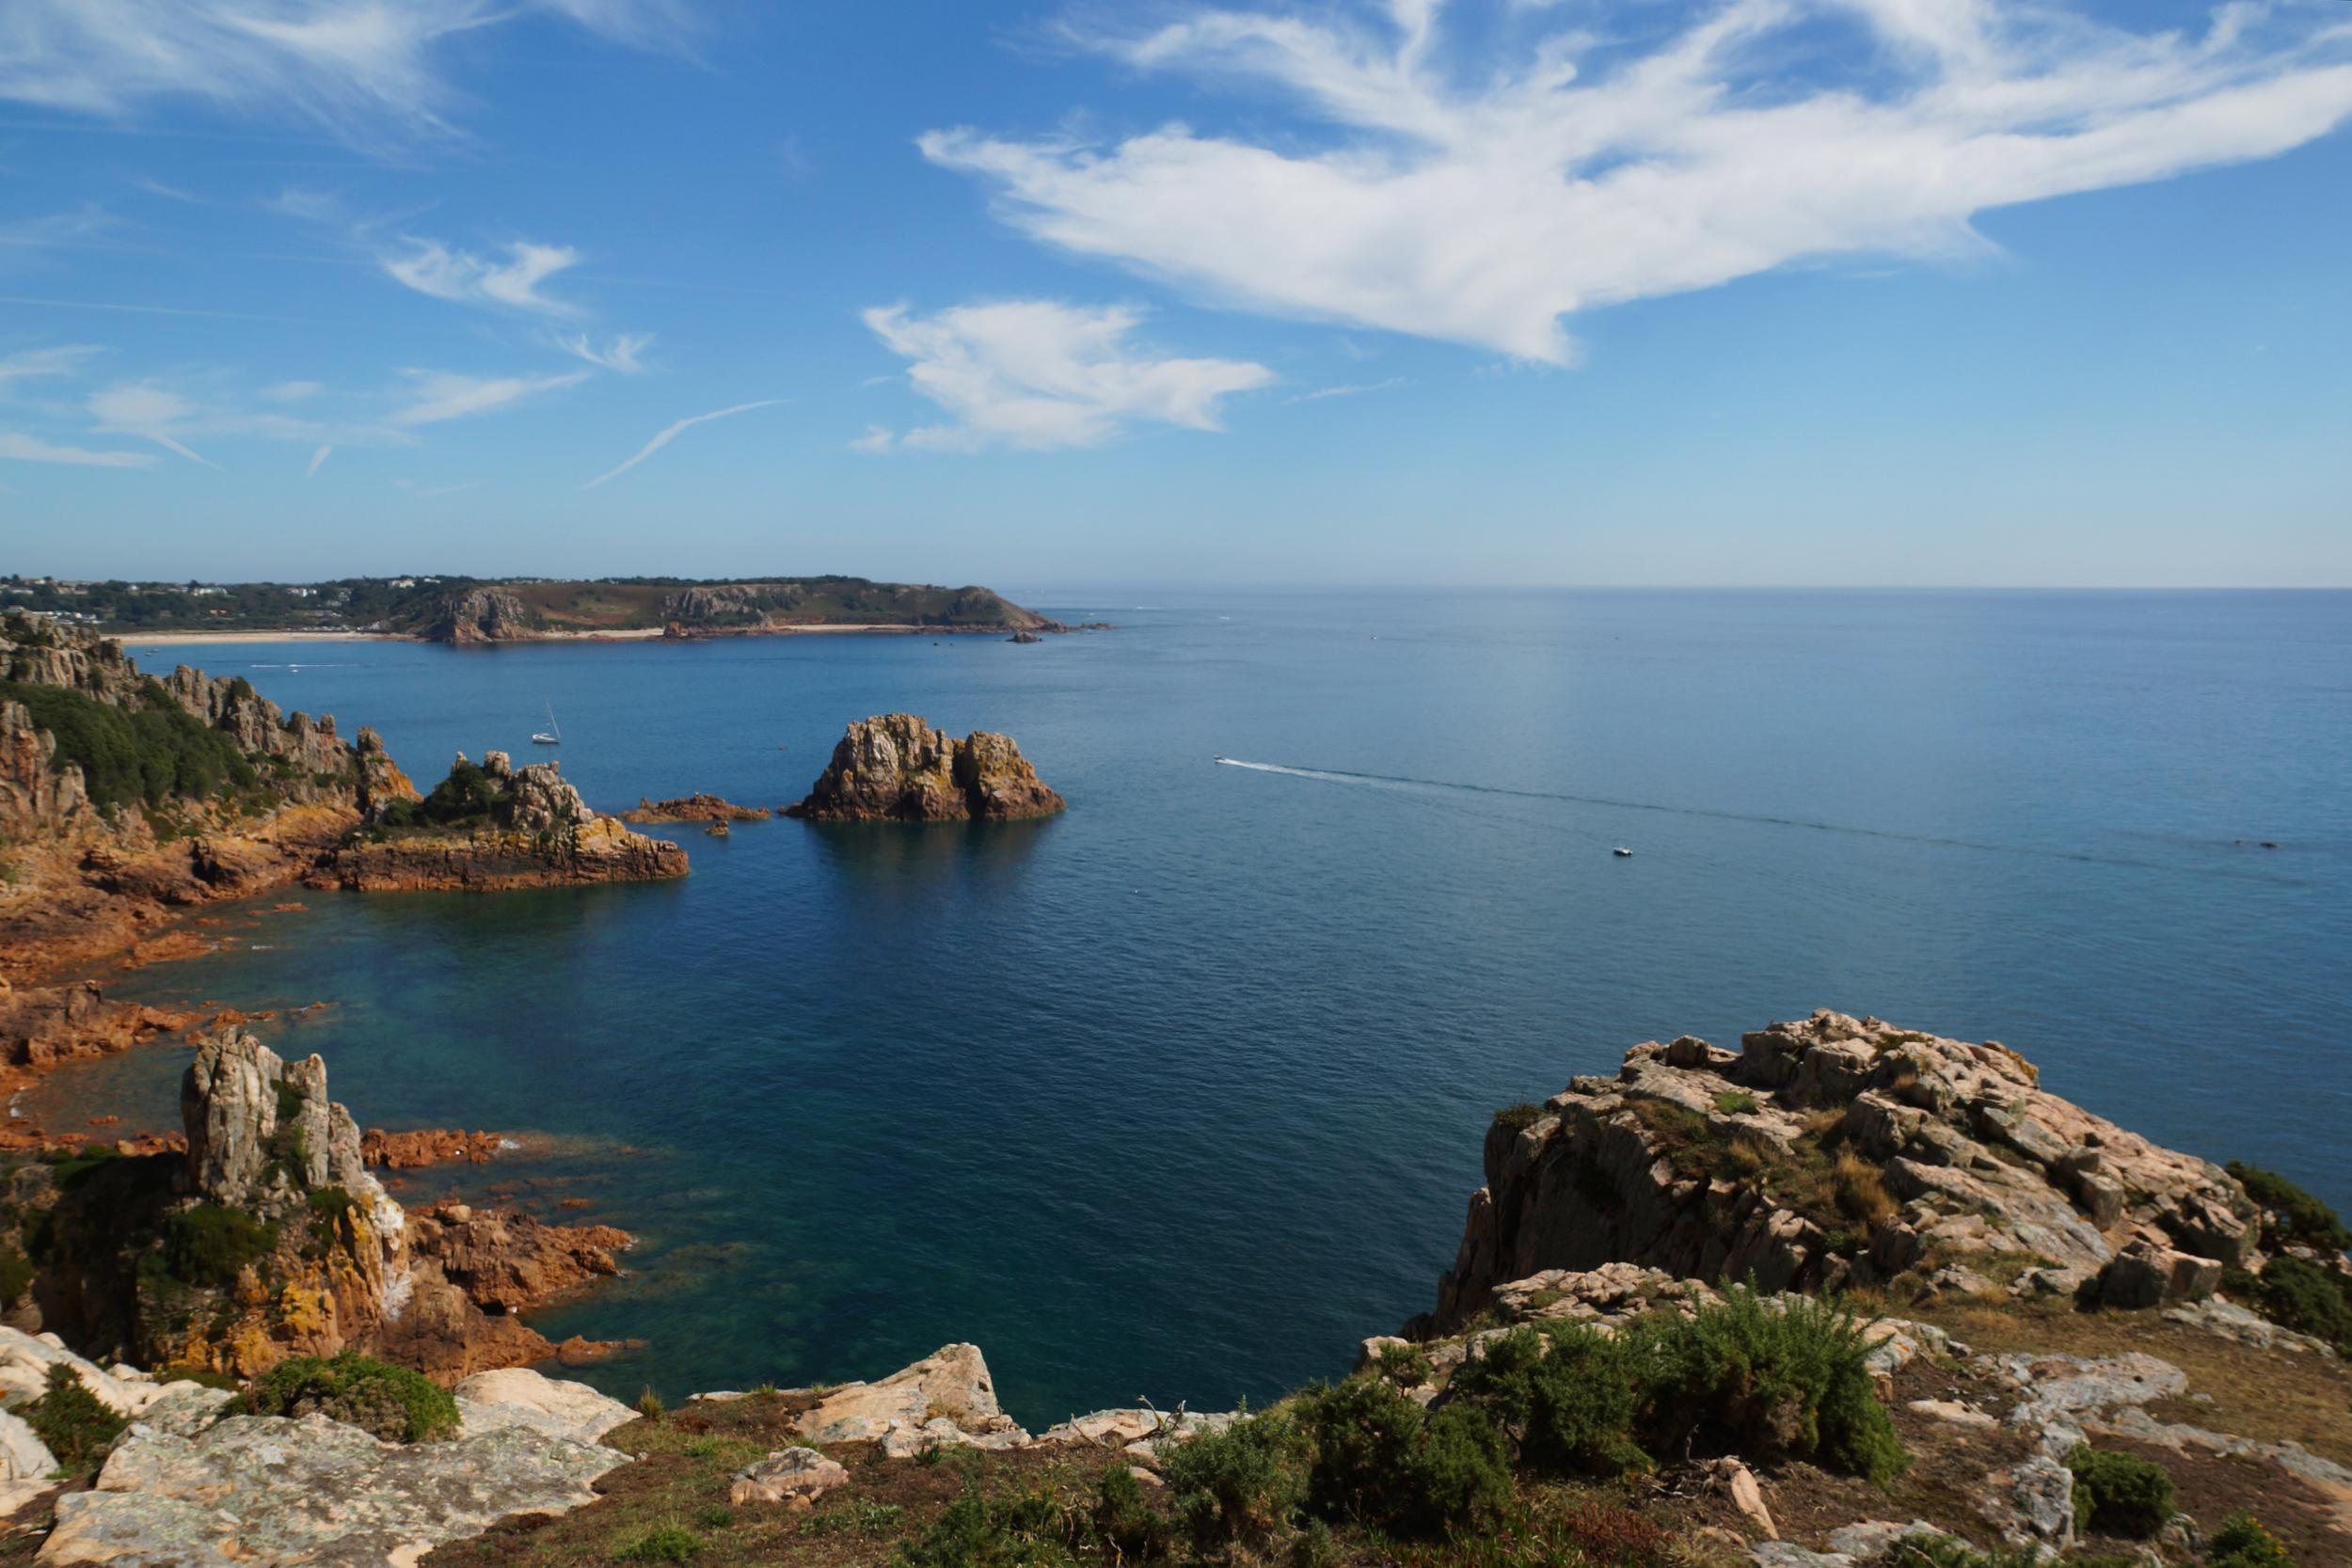 Jersey is the largest of the Channel Islands but is still only 9 miles by 5 miles. The island is know for being one of the hottest places in the British Isles during the summer and is often a few degrees warmer than the mainland.